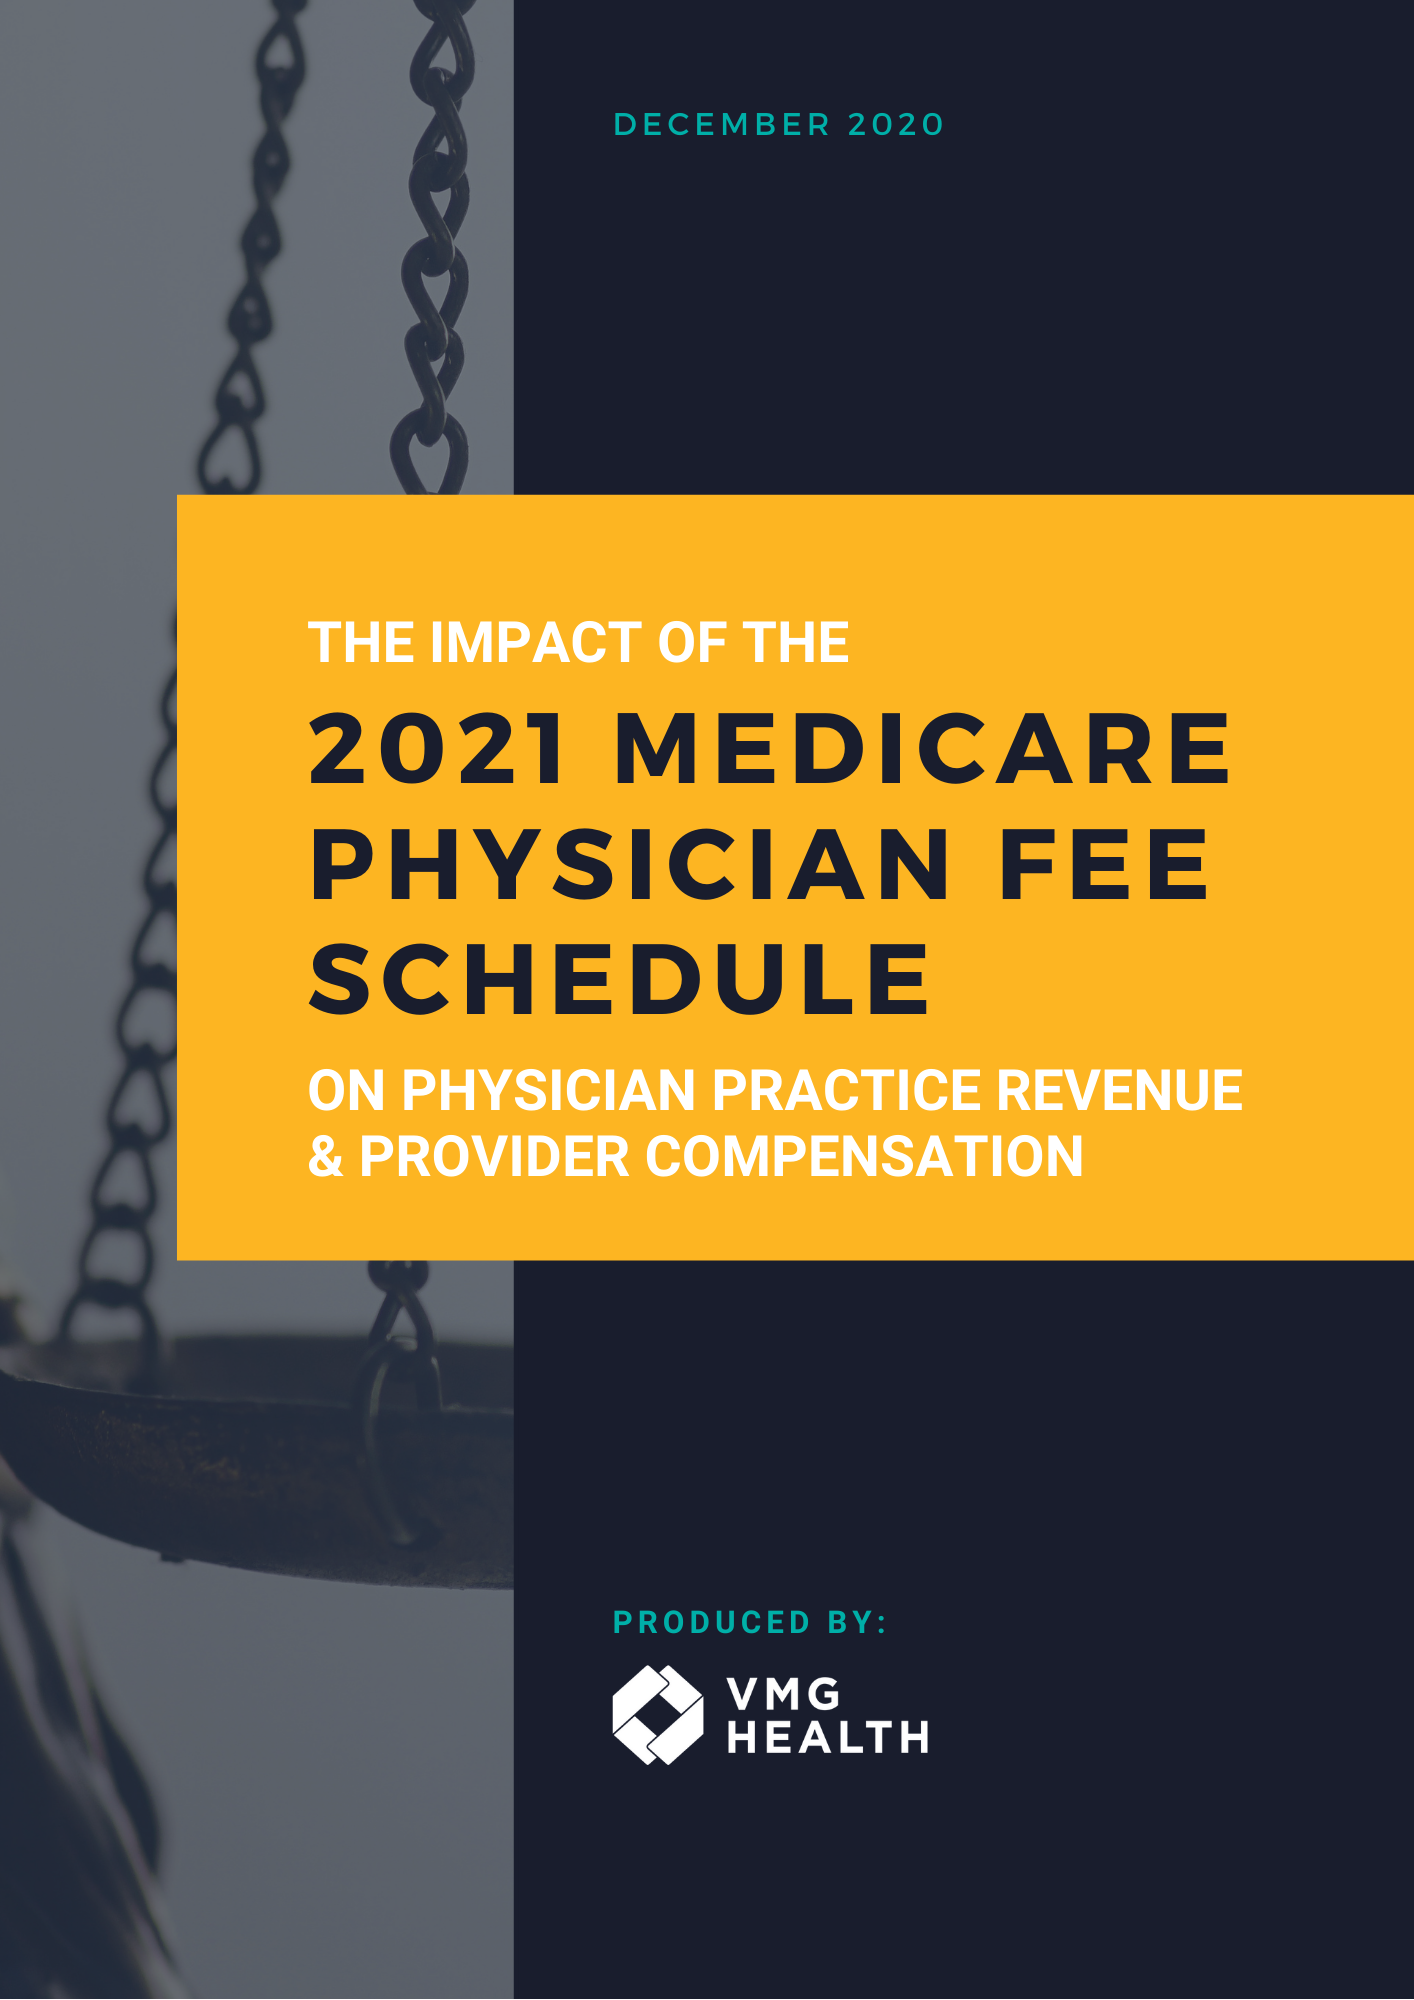 The Impact of the 2021 Medicare Physician Fee Schedule on Physician Practice Revenue and Provider Compensation